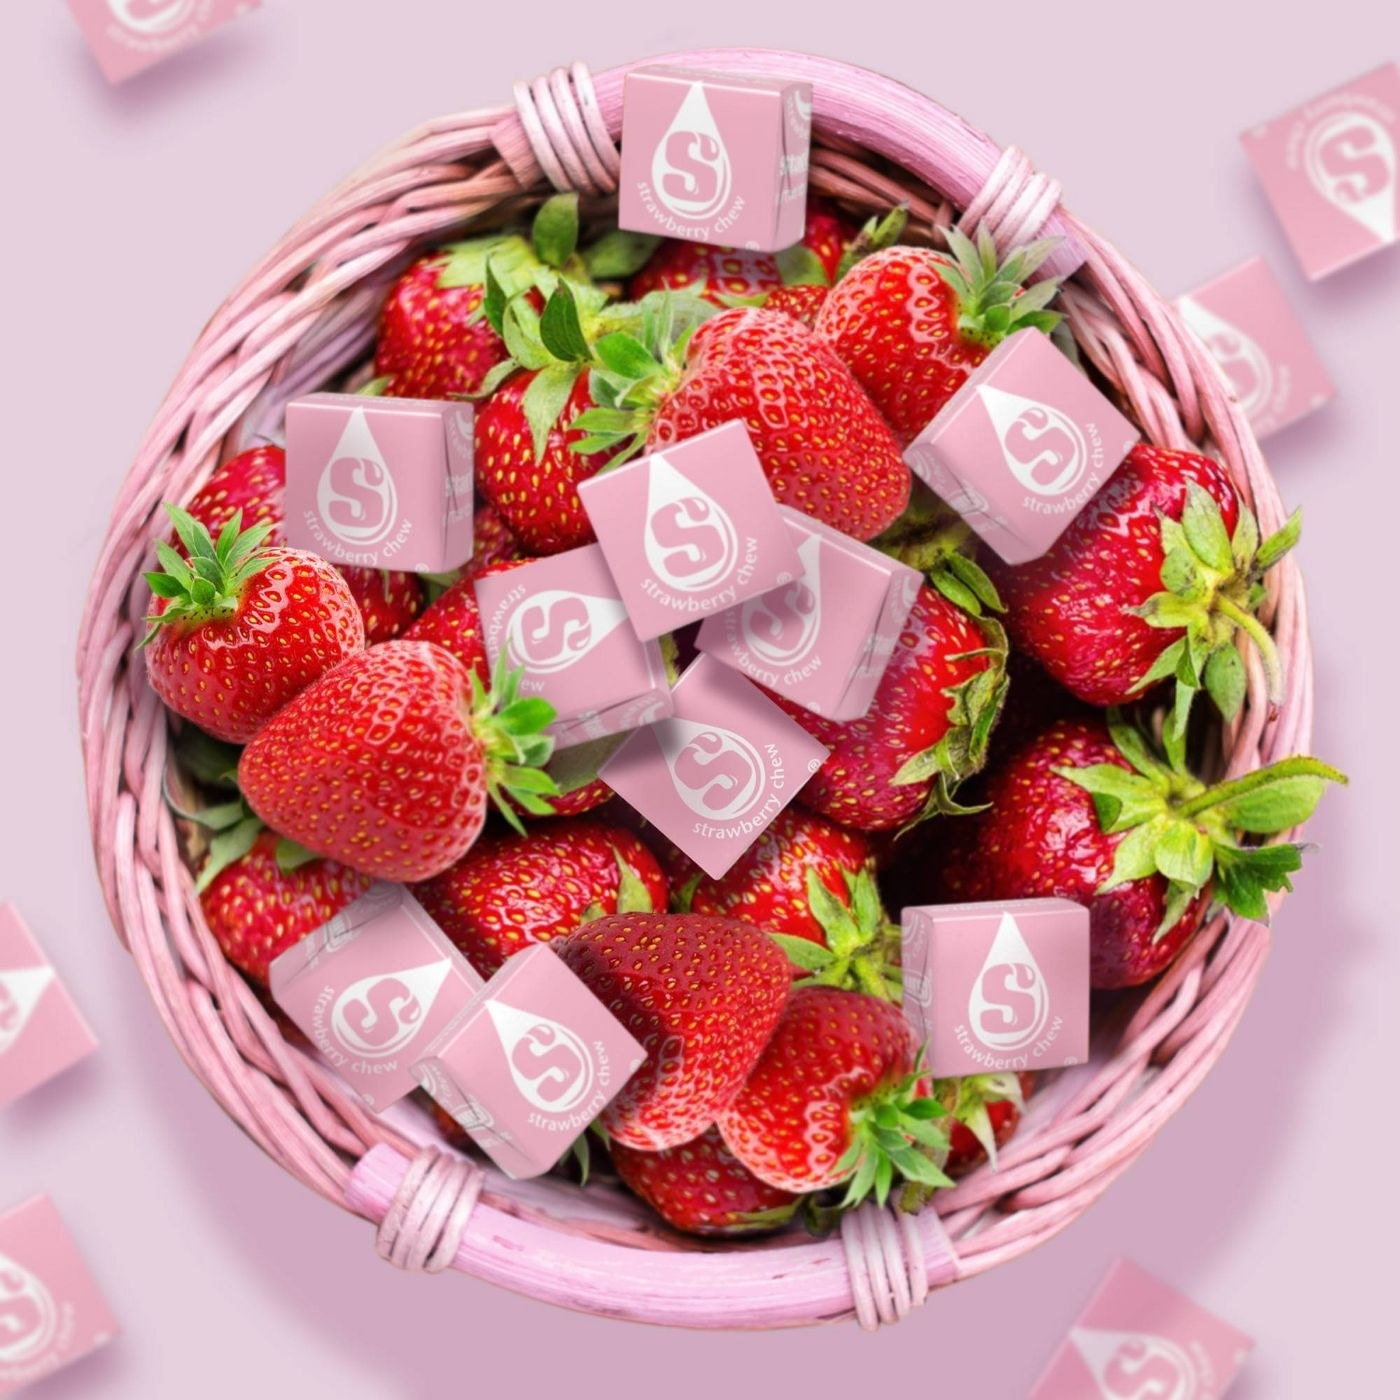 Pink starbursts in a pink basket with strawberries